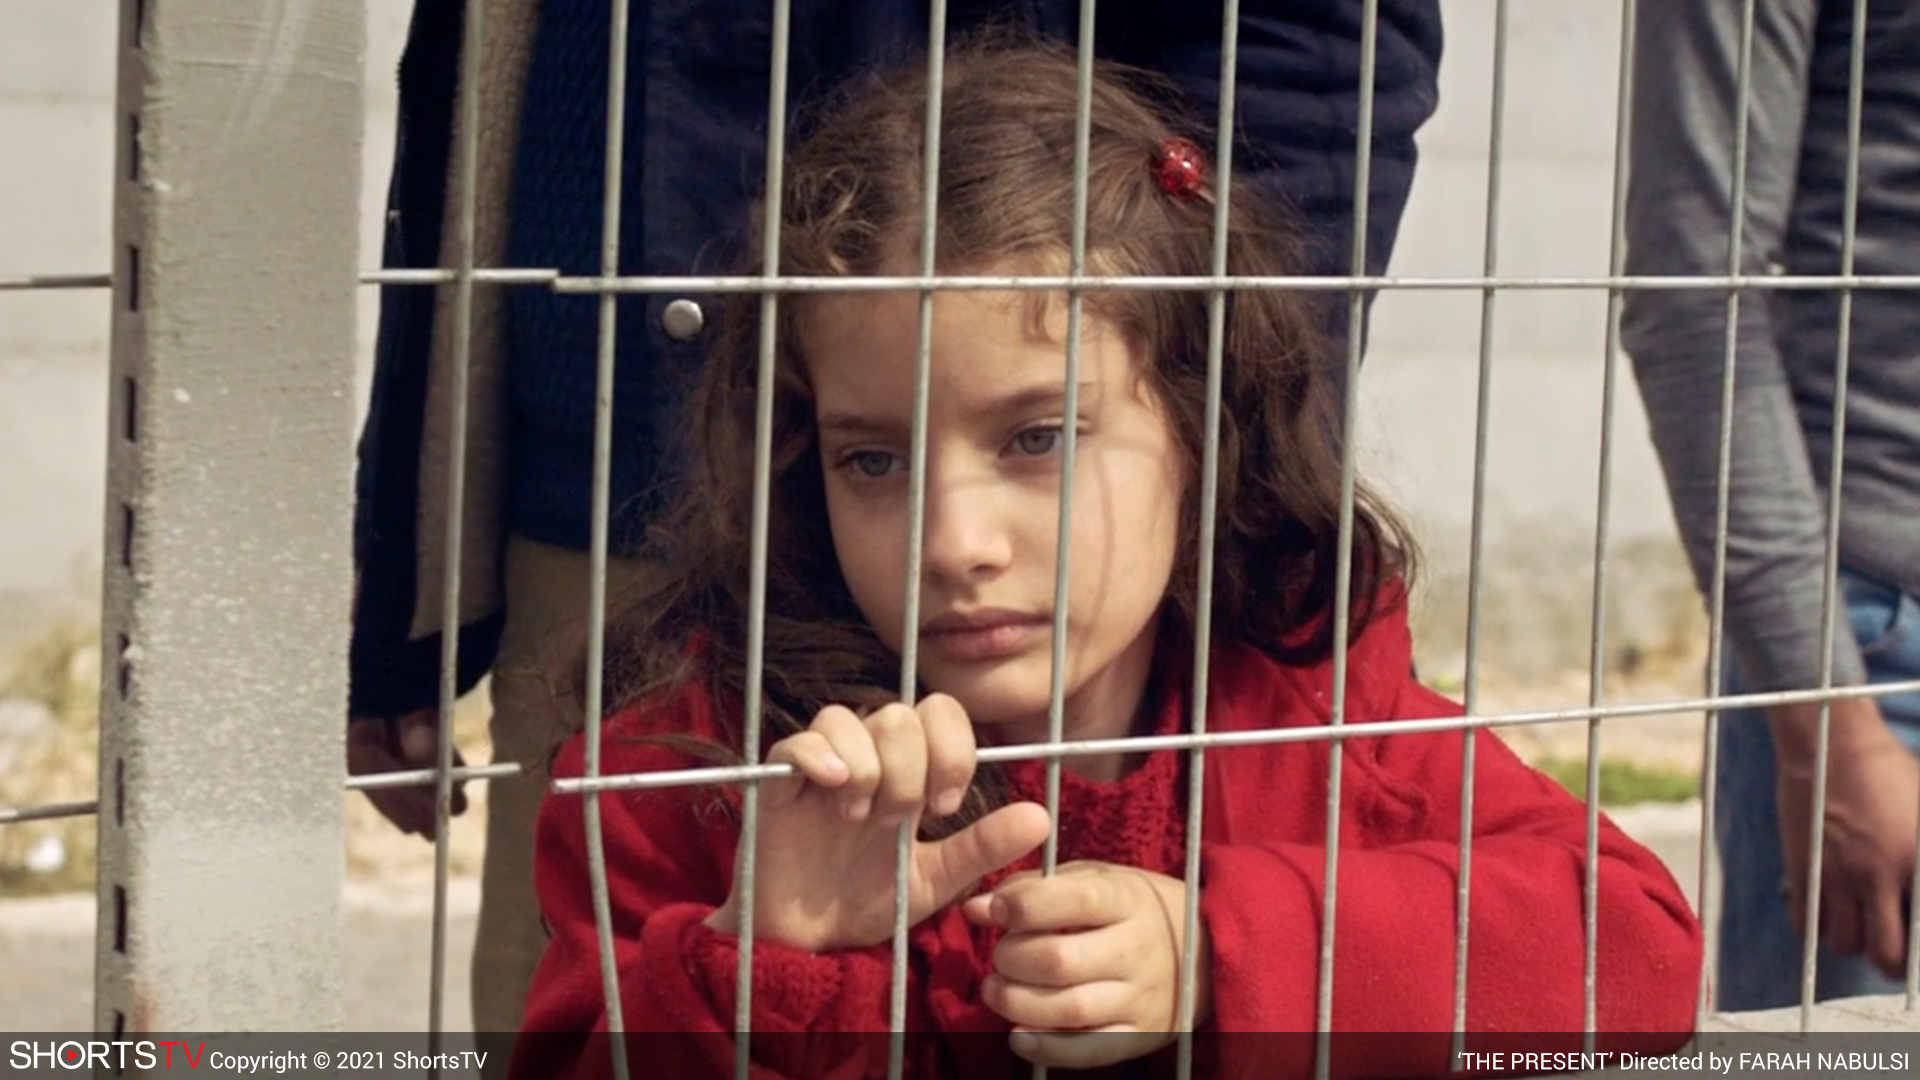 A girl in a red coat behind a fence